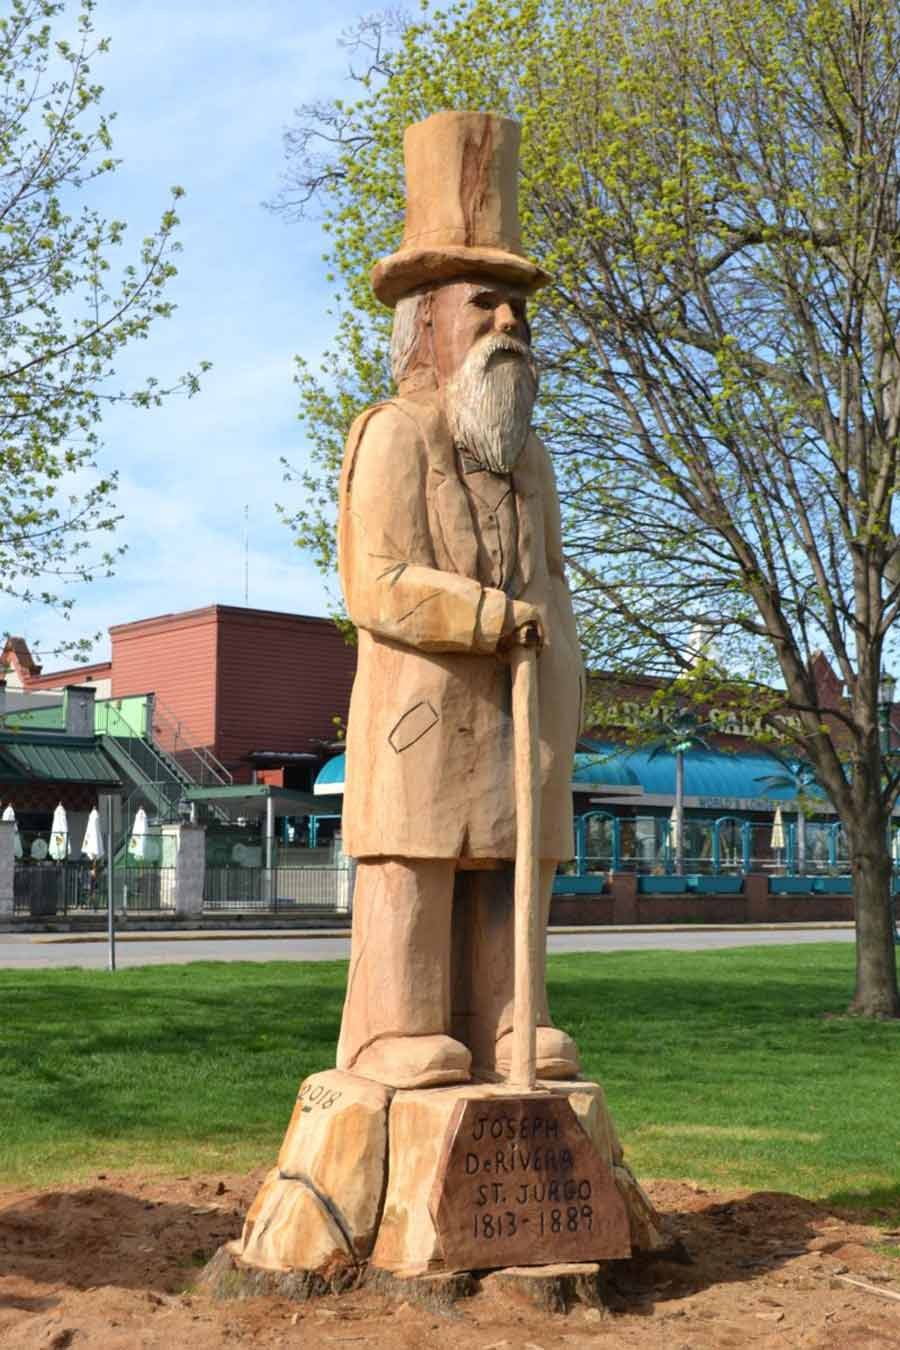 Put-in-Bay Parks - A photo of the completed tree carving monument of history maker Jose DeRivera at the Put-in-Bay Park.